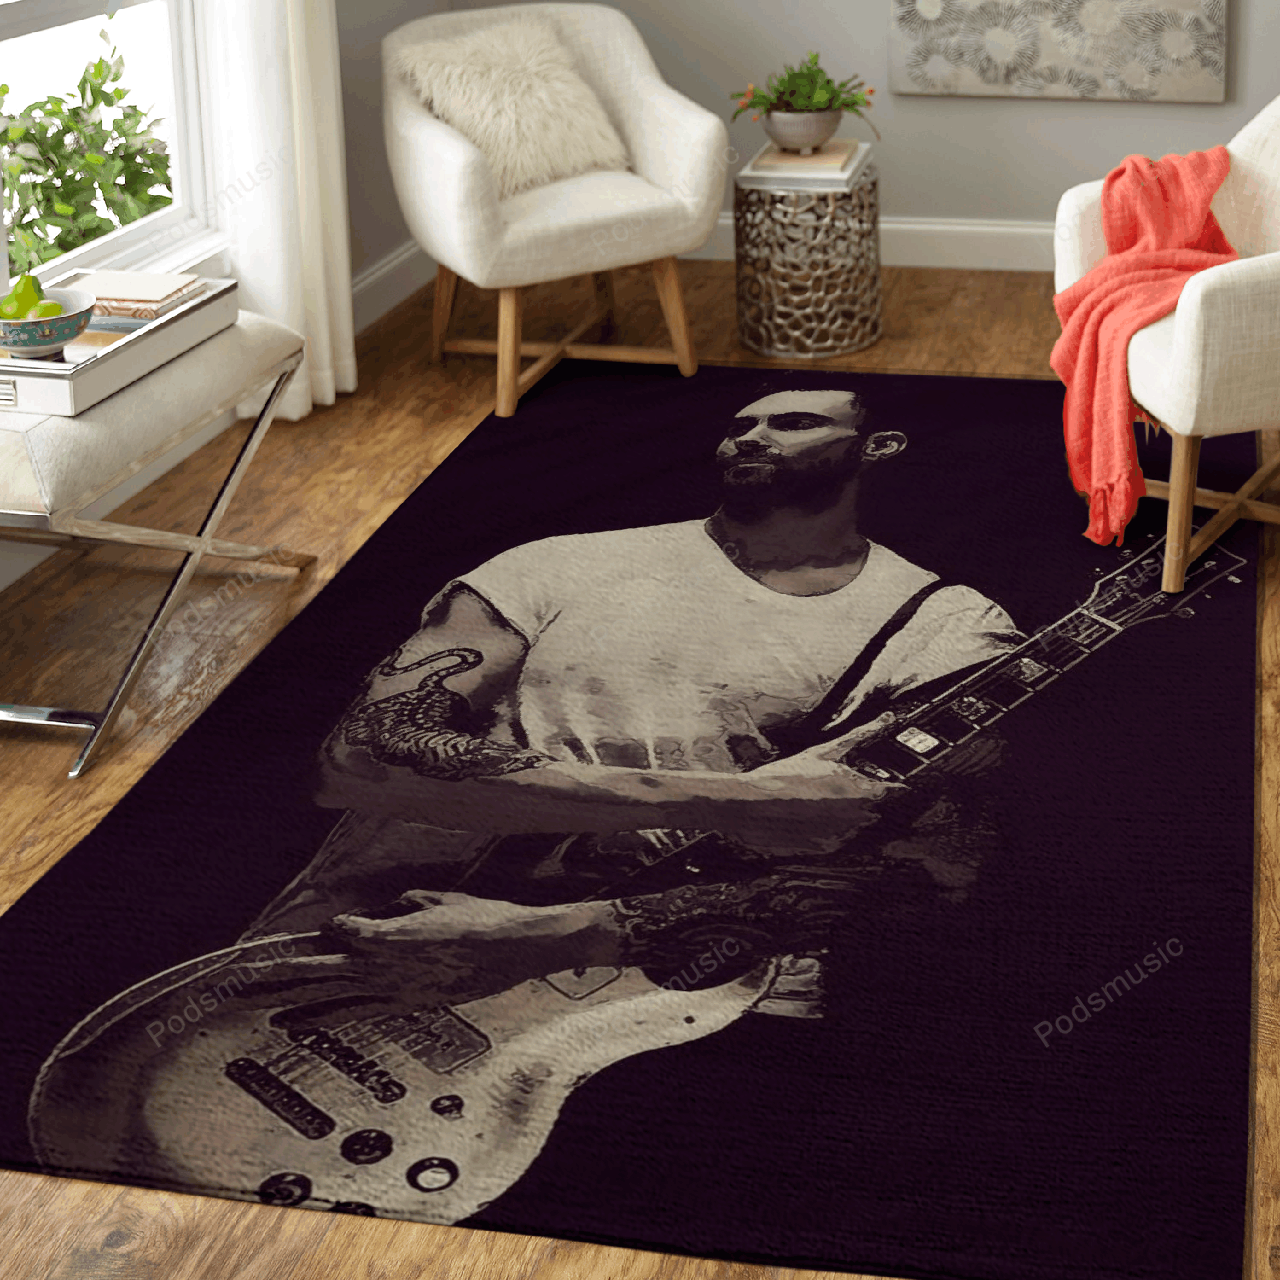 Maroon 5 25 - Music Art For Fans Area Rug Living Room Carpet Floor Decor